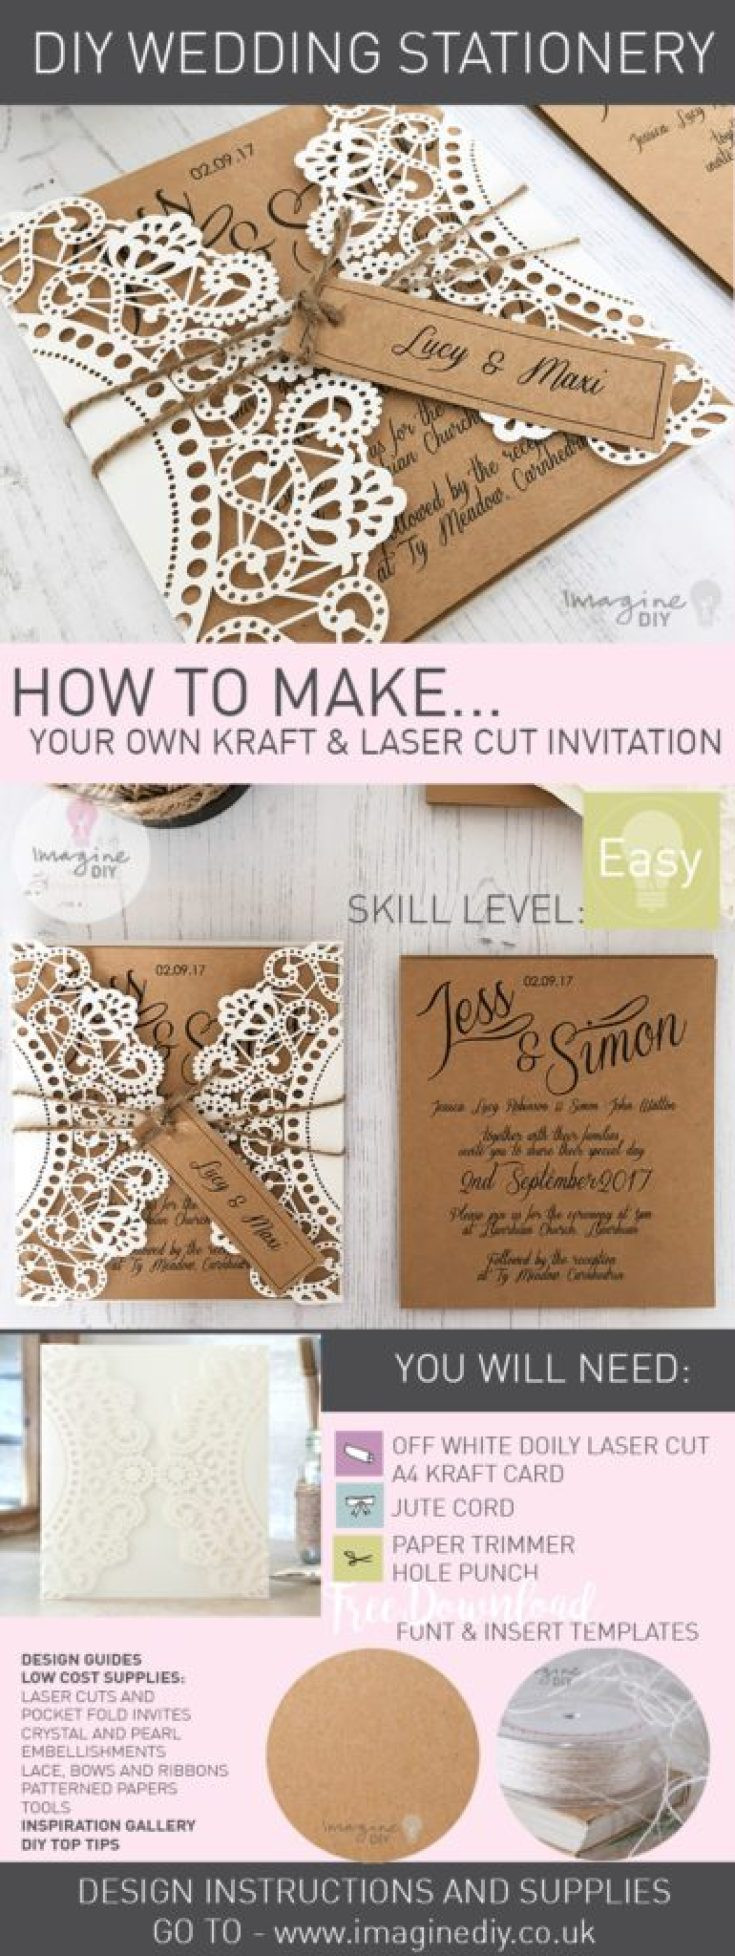 Best ideas about DIY Laser Cut Wedding Invitations . Save or Pin How to Make Rustic Kraft and Laser Cut Invitation with Now.